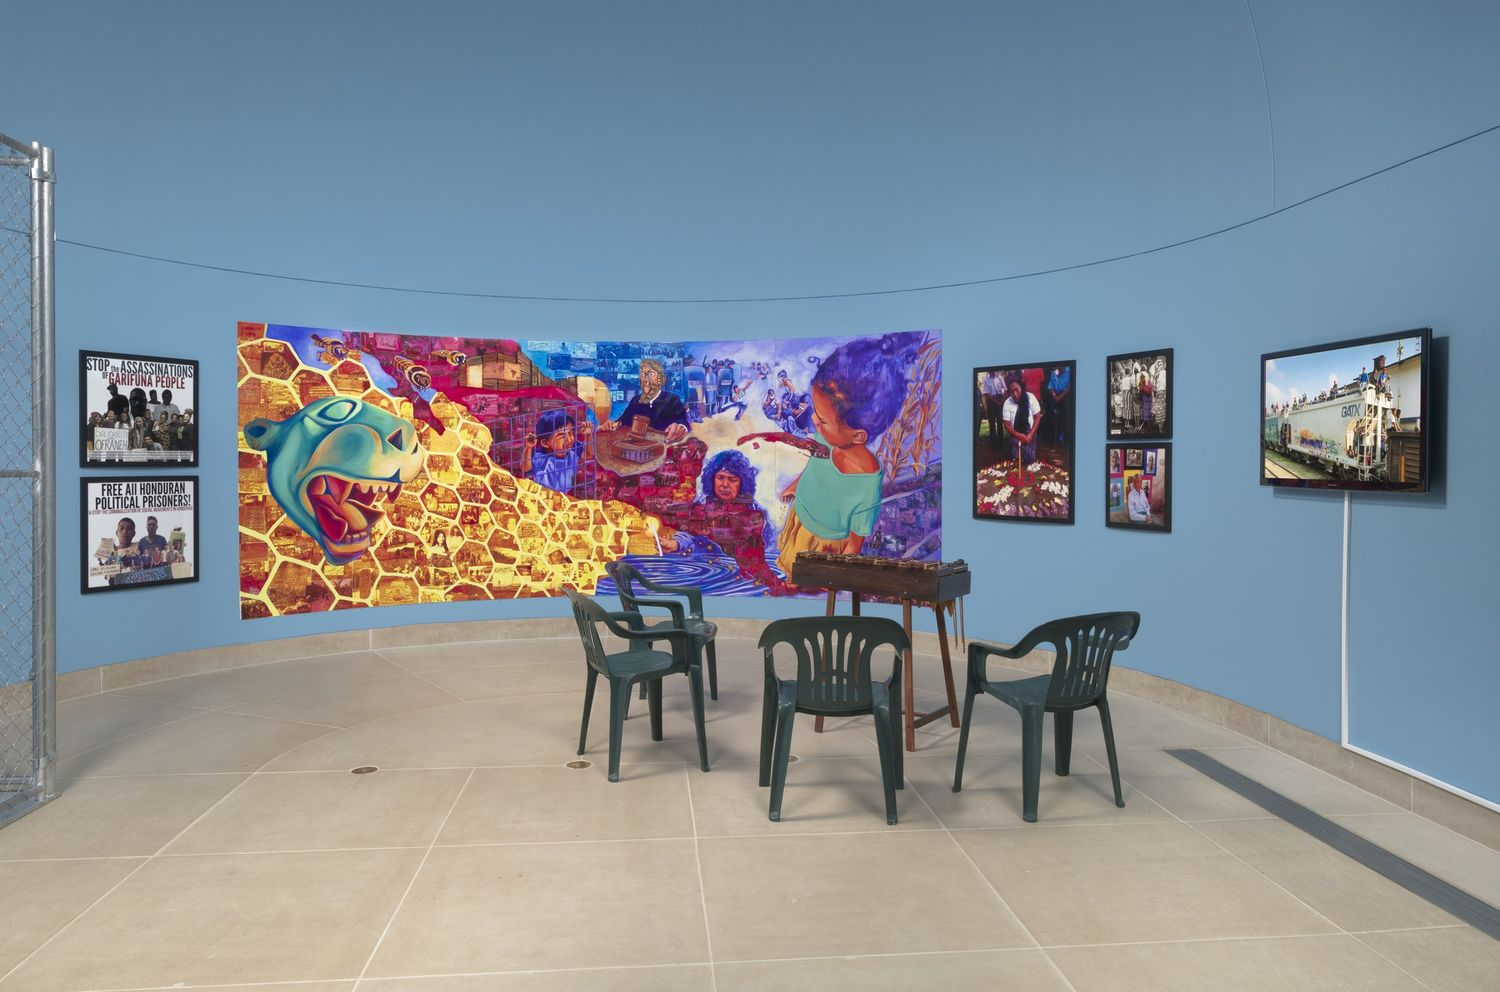 A colorful mural against a pale blue wall with displays on either side, and green chairs on the gallery floor